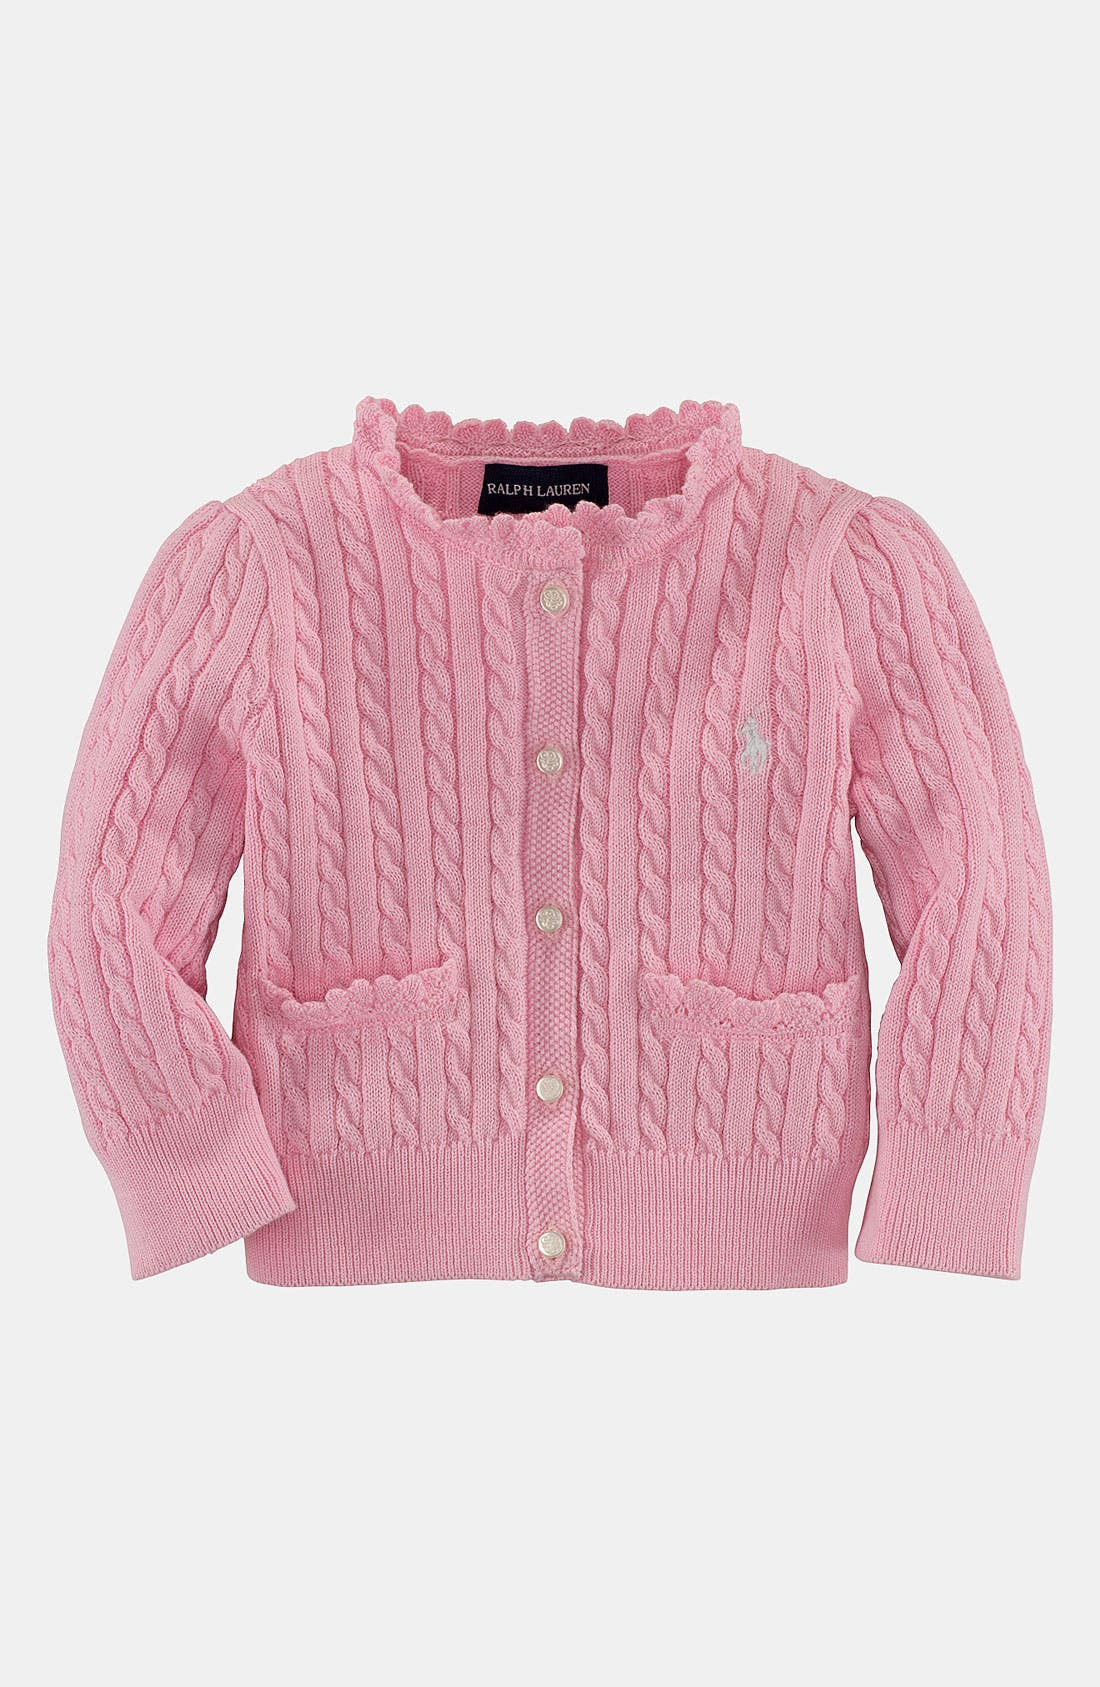 Alternate Image 1 Selected - Ralph Lauren Cable Knit Cardigan (Infant)